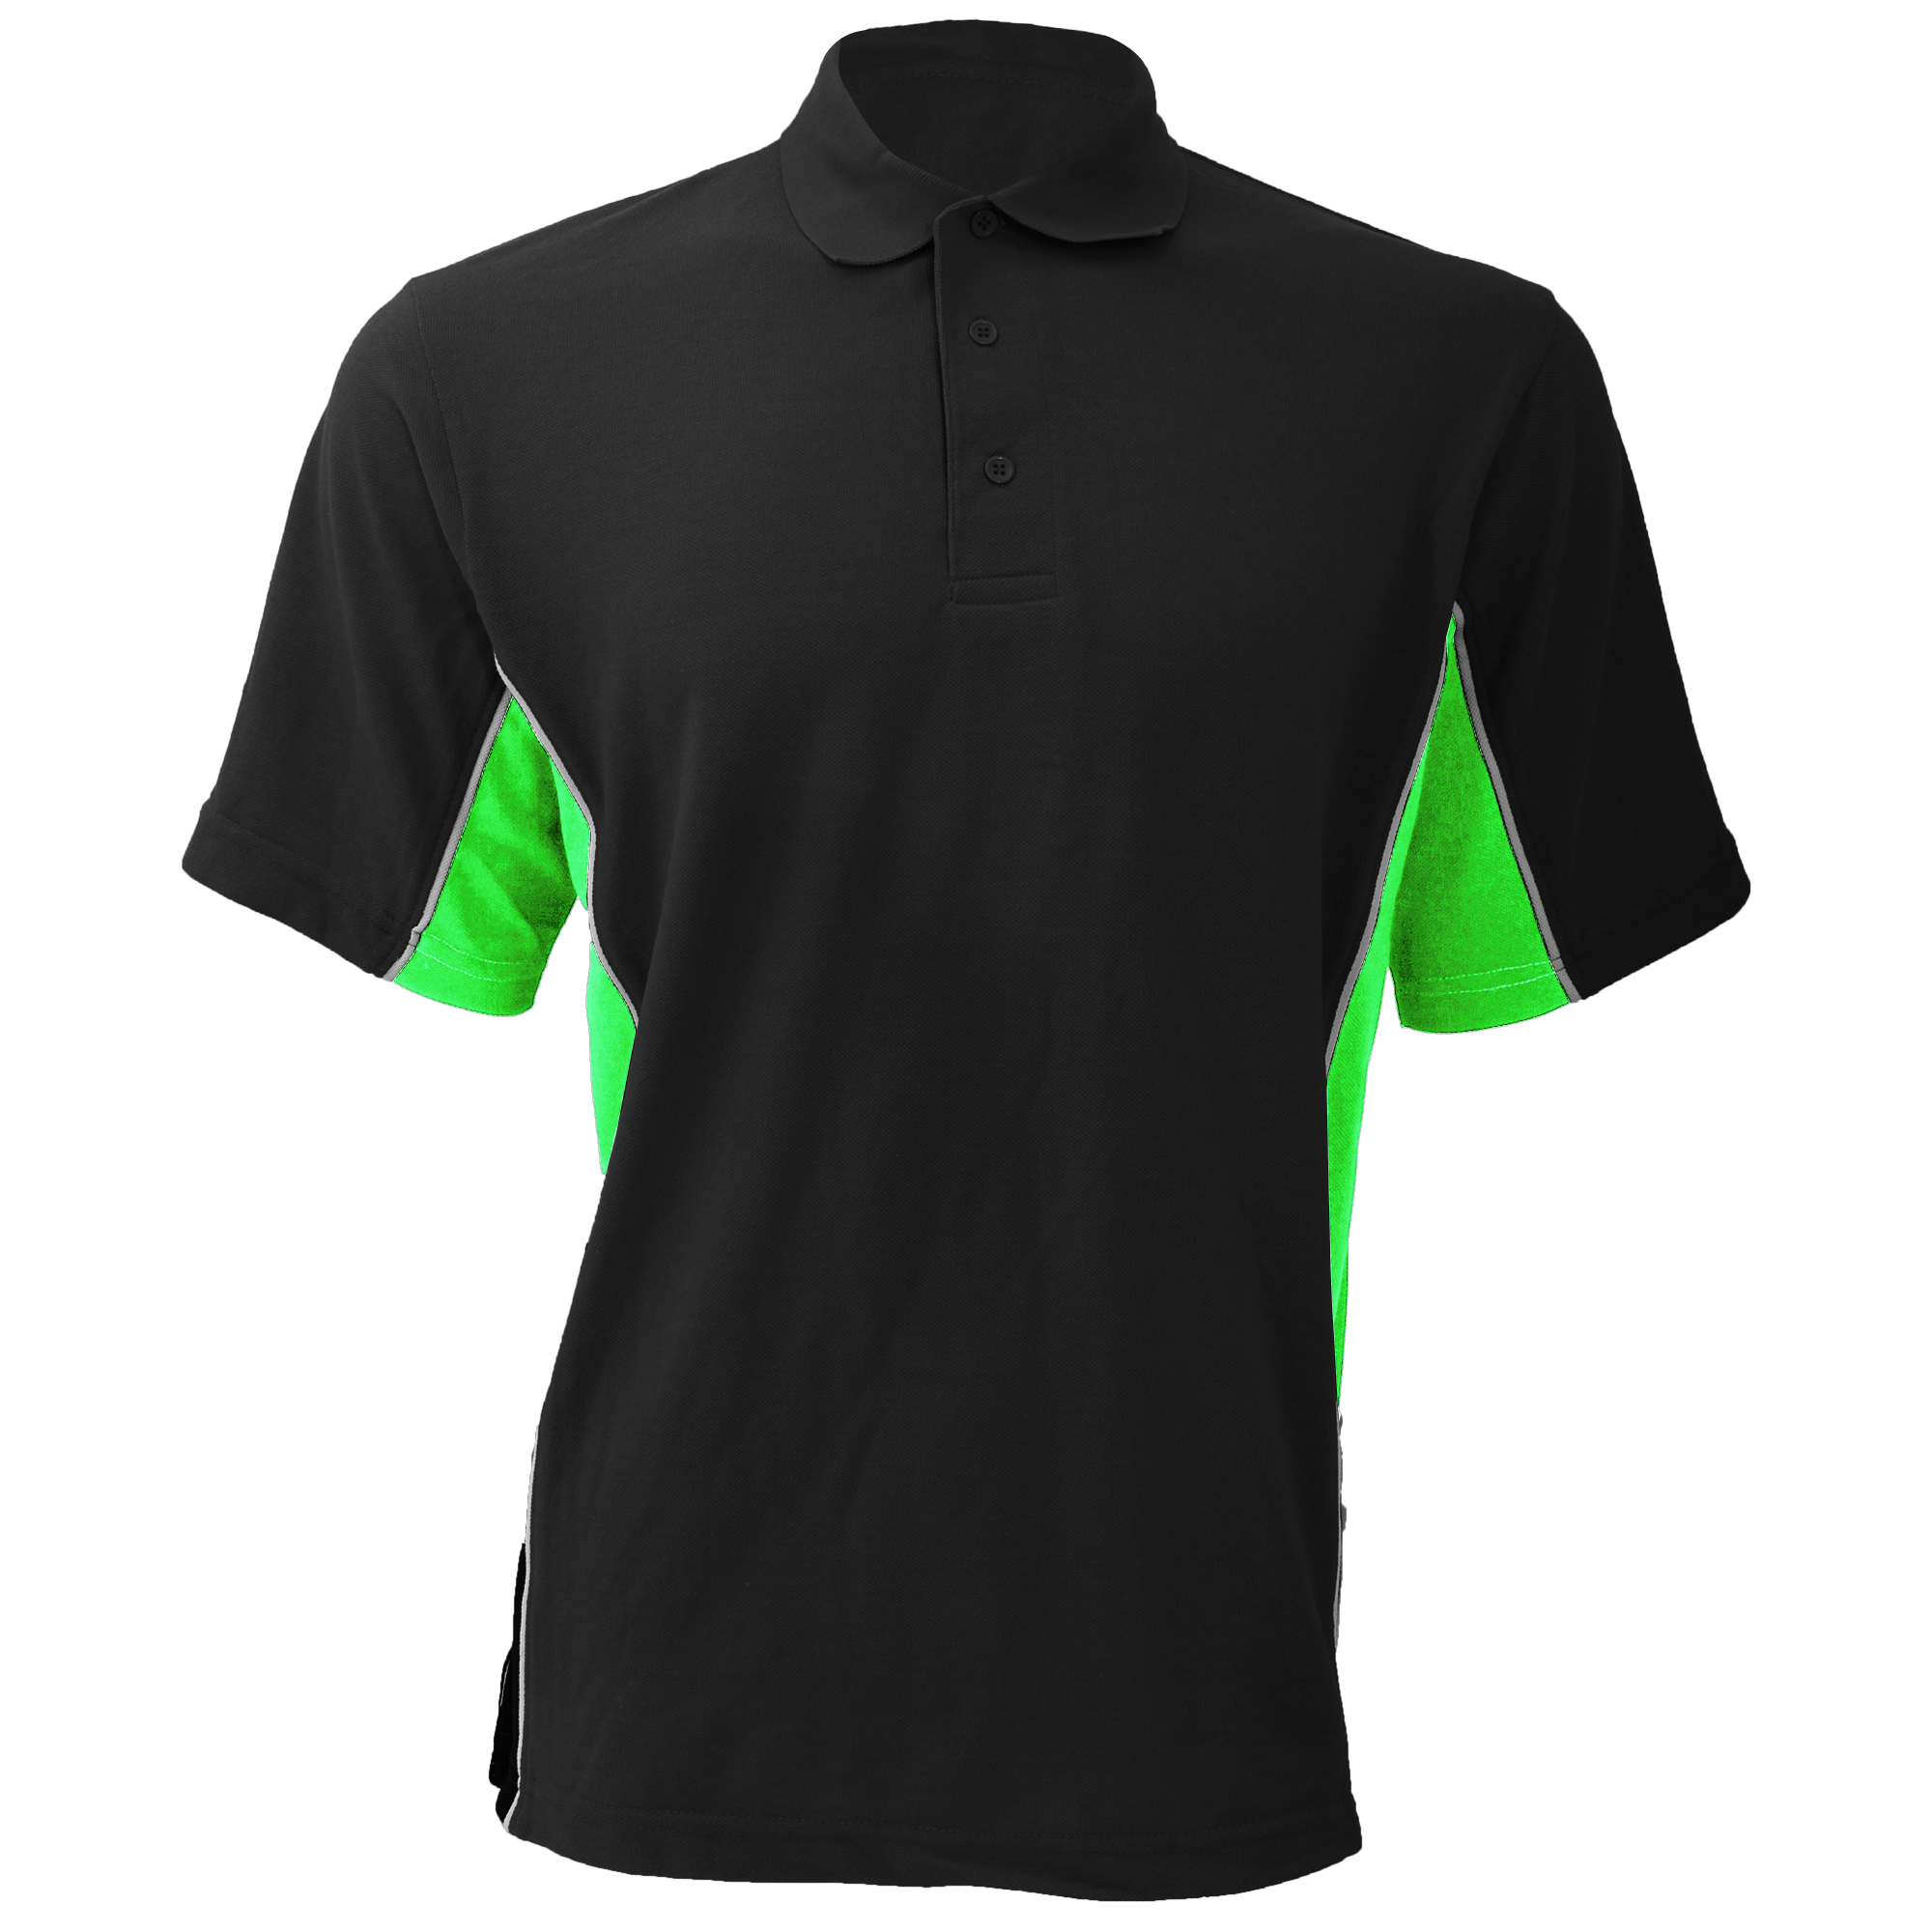 Gamegear-Mens-Track-Pique-Short-Sleeve-Polo-Shirt-Top-BC412